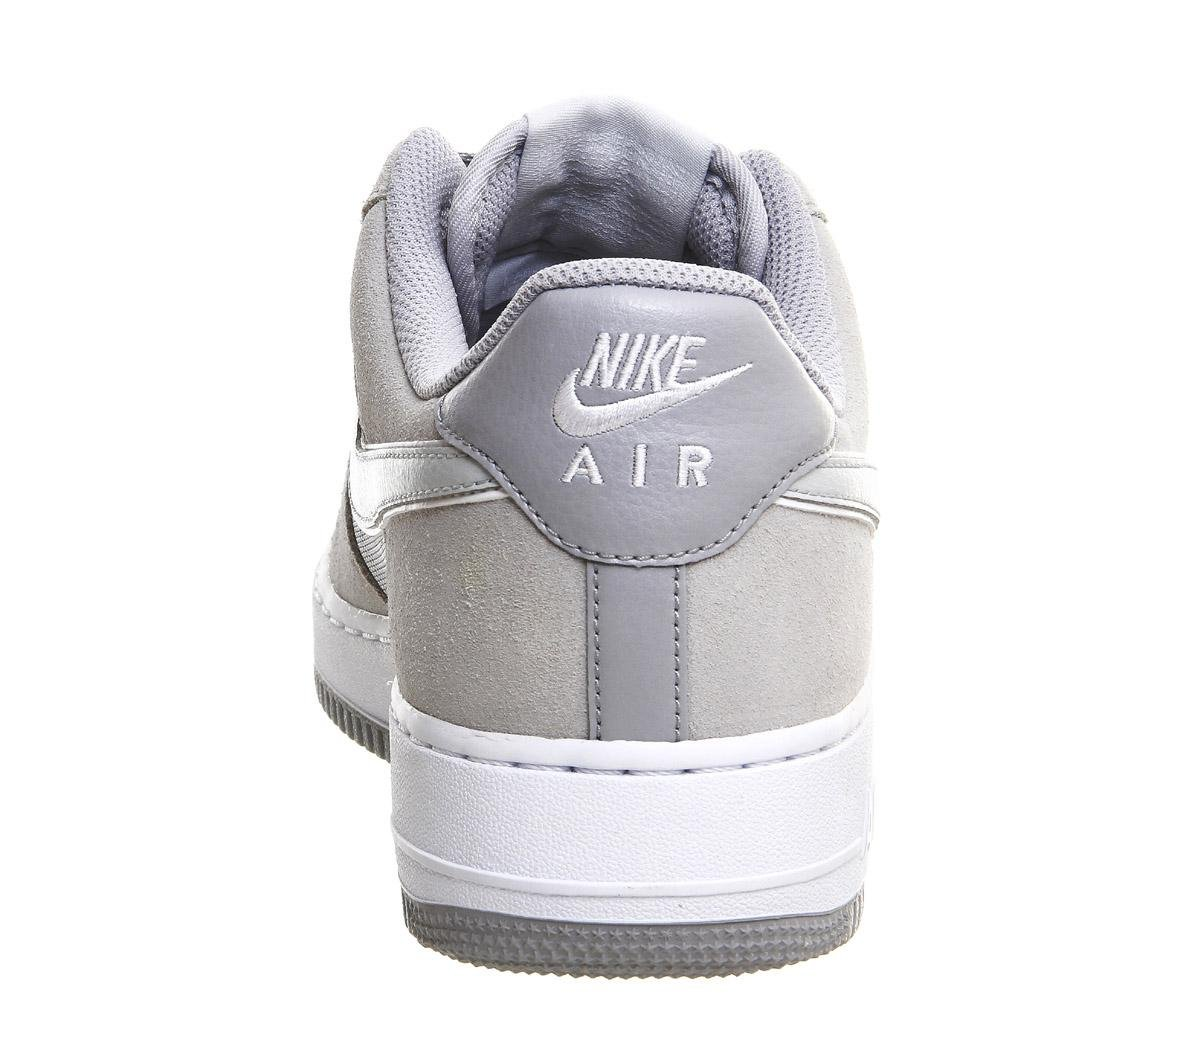 Nike Suede Air Force One (m) in Grey (Grey) for Men